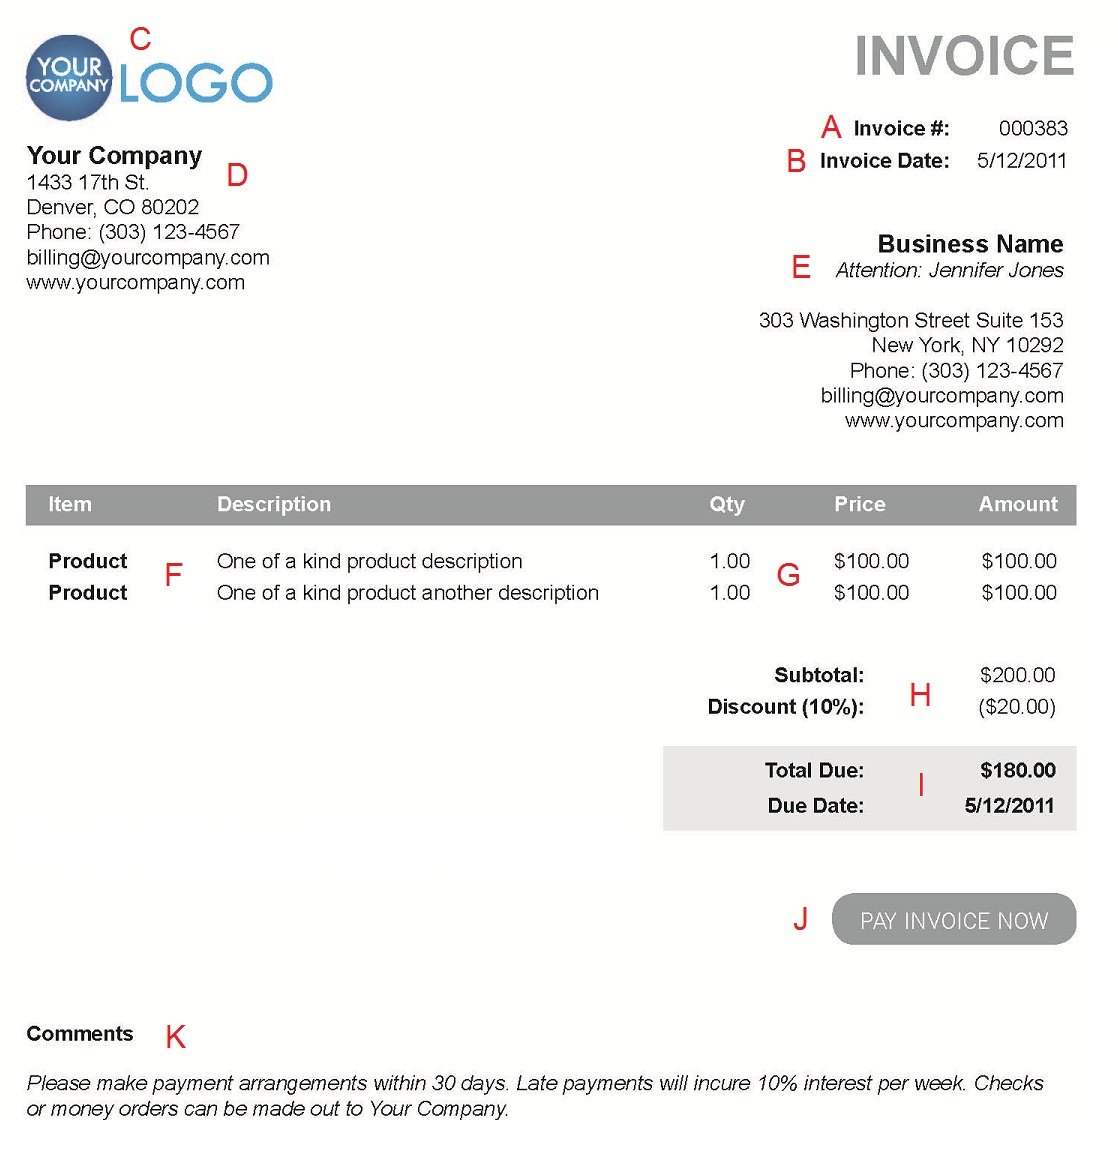 Opposenewapstandardsus  Pretty The  Different Sections Of An Electronic Payment Invoice With Excellent A  With Lovely Independent Contractor Invoice Also Past Due Invoice In Addition Ms Invoice And Invoice Payment As Well As Outstanding Invoices Additionally Quickbooks Invoicing From Paysimplecom With Opposenewapstandardsus  Excellent The  Different Sections Of An Electronic Payment Invoice With Lovely A  And Pretty Independent Contractor Invoice Also Past Due Invoice In Addition Ms Invoice From Paysimplecom